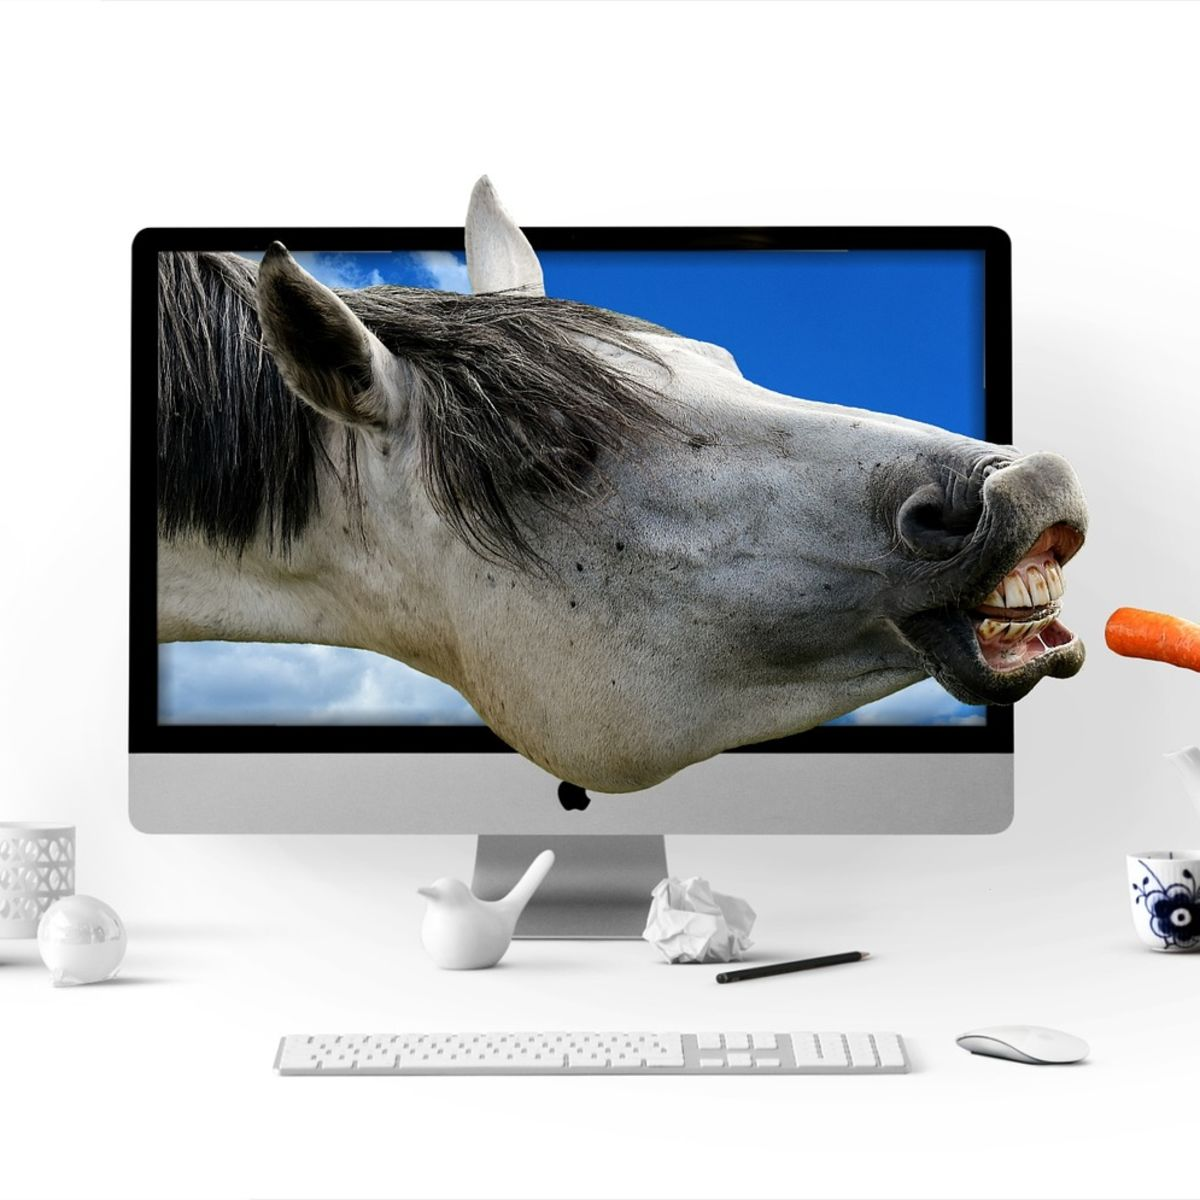 Horse in screen being fed a carrot